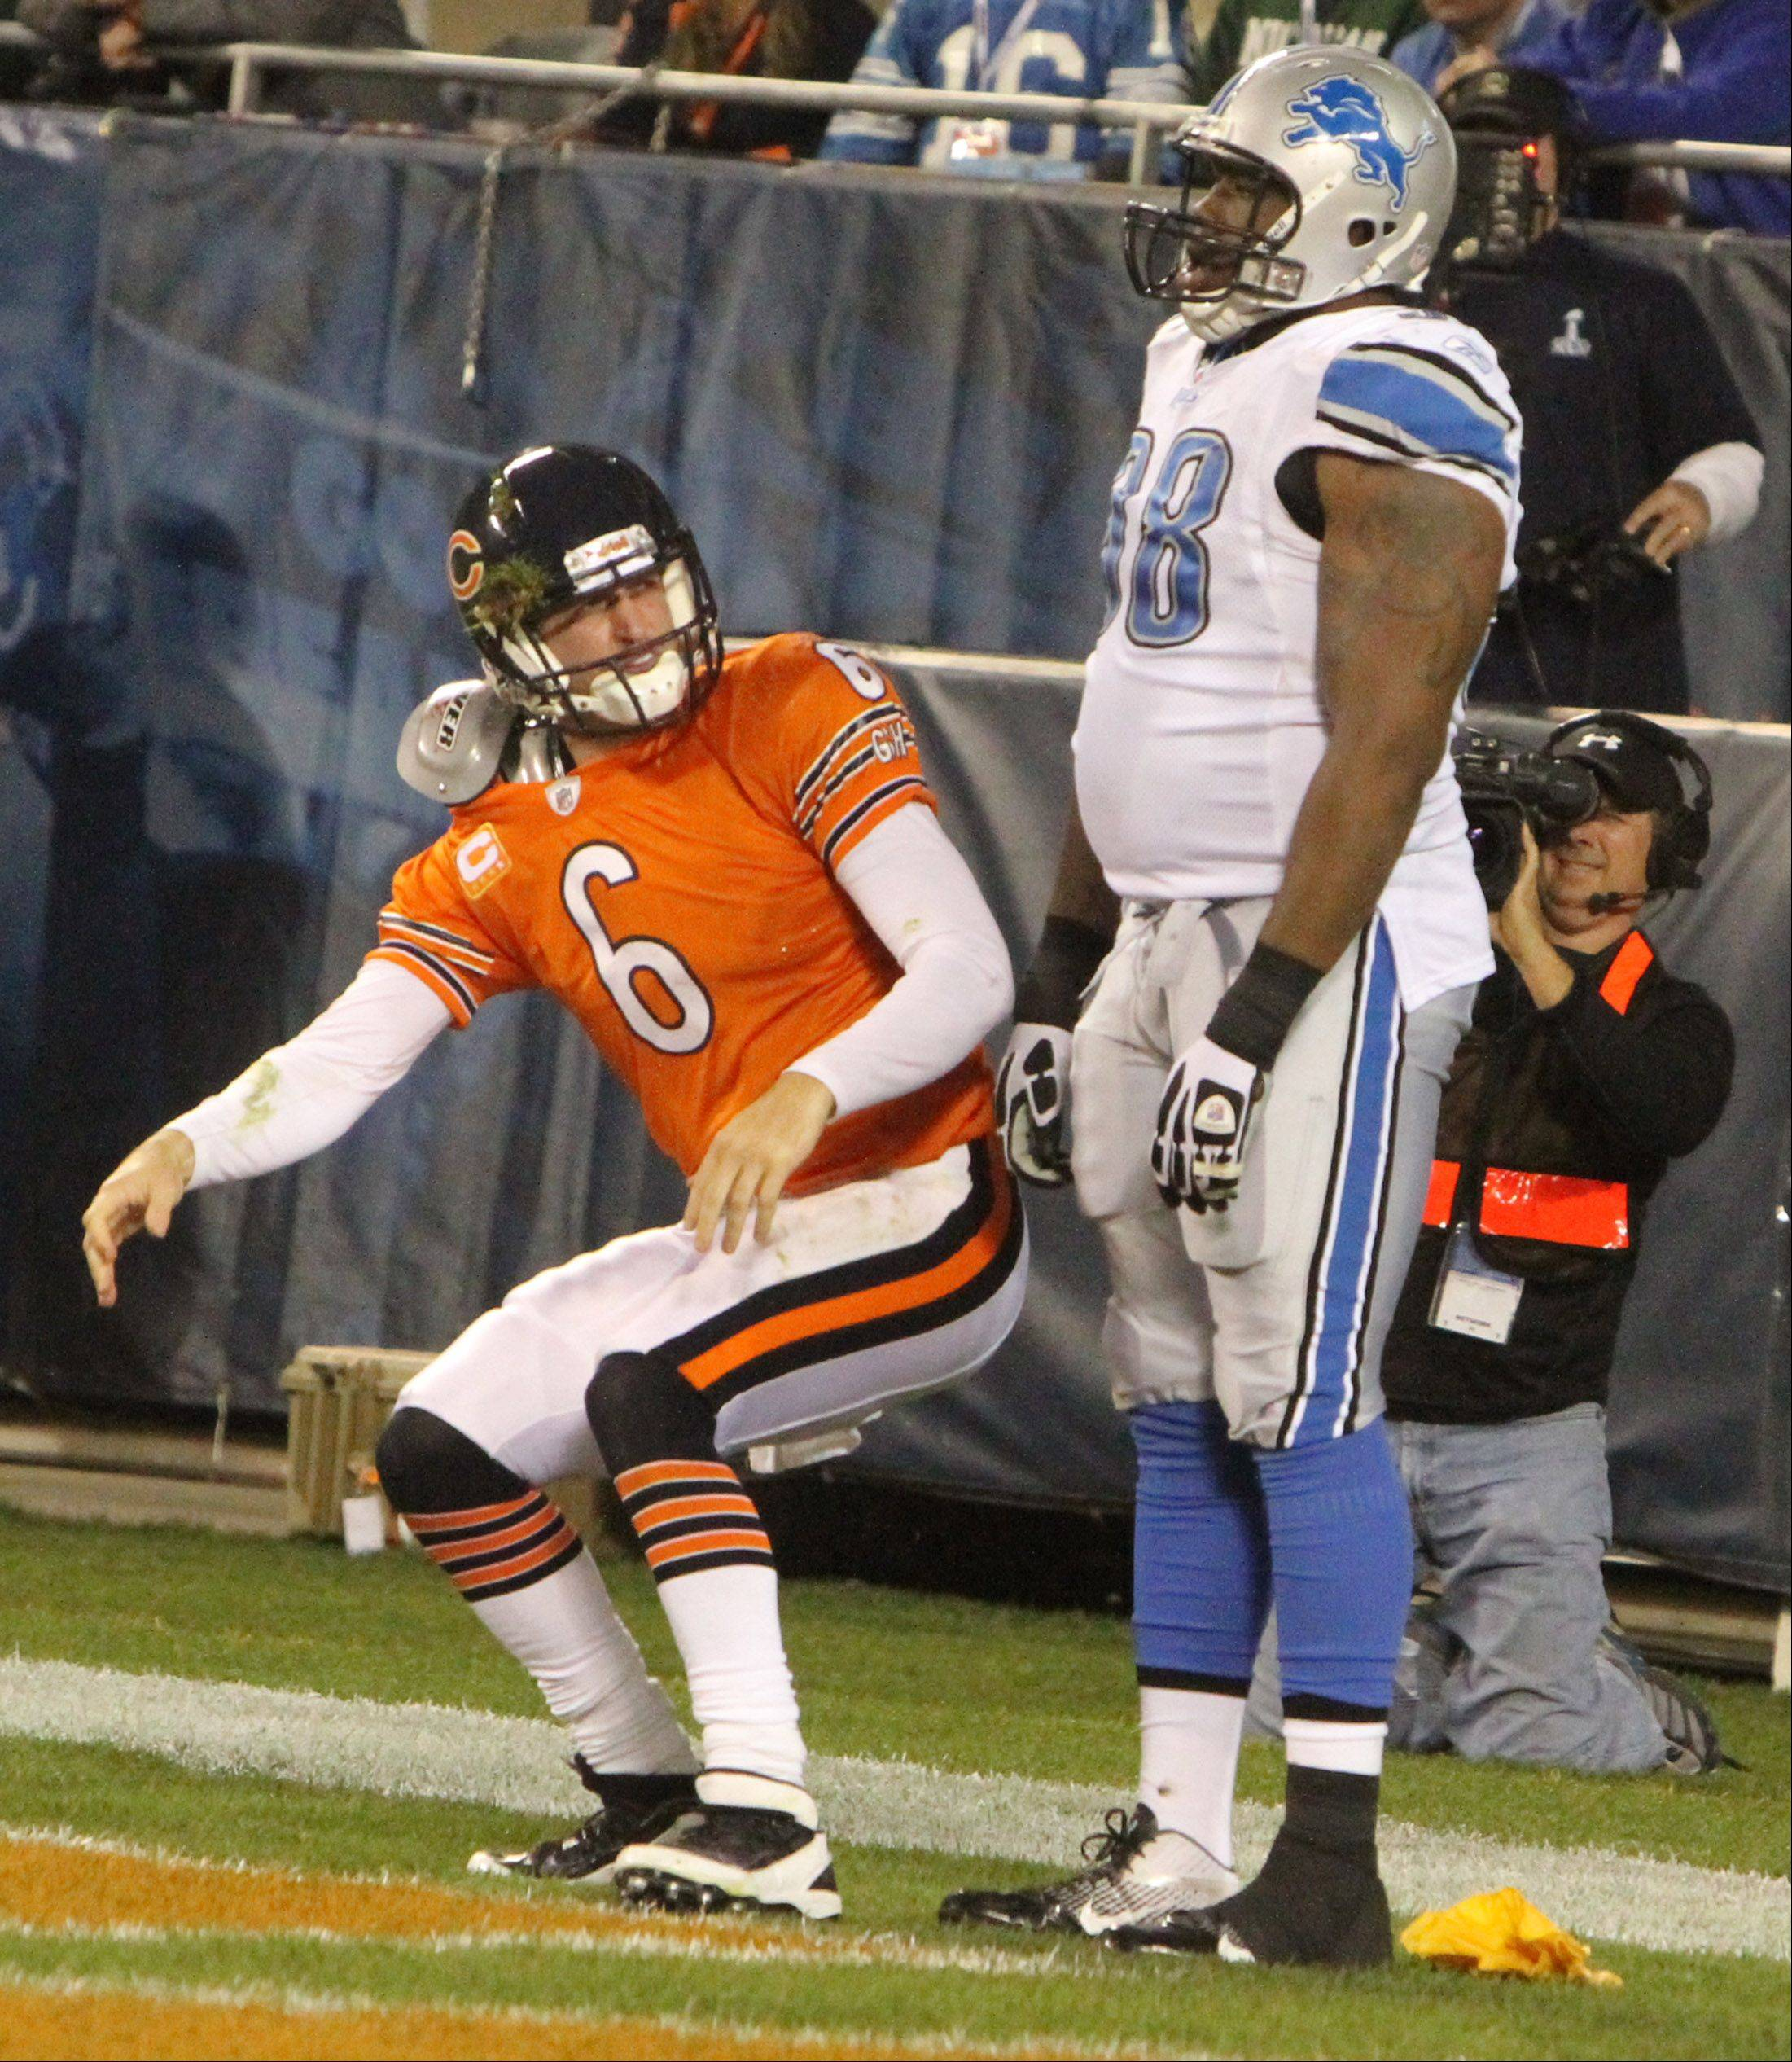 Bears quarterback Jay Cutler reacts to suffering some unnecessary roughness from Lions defender Nick Fairley in the fourth quarter Sunday.